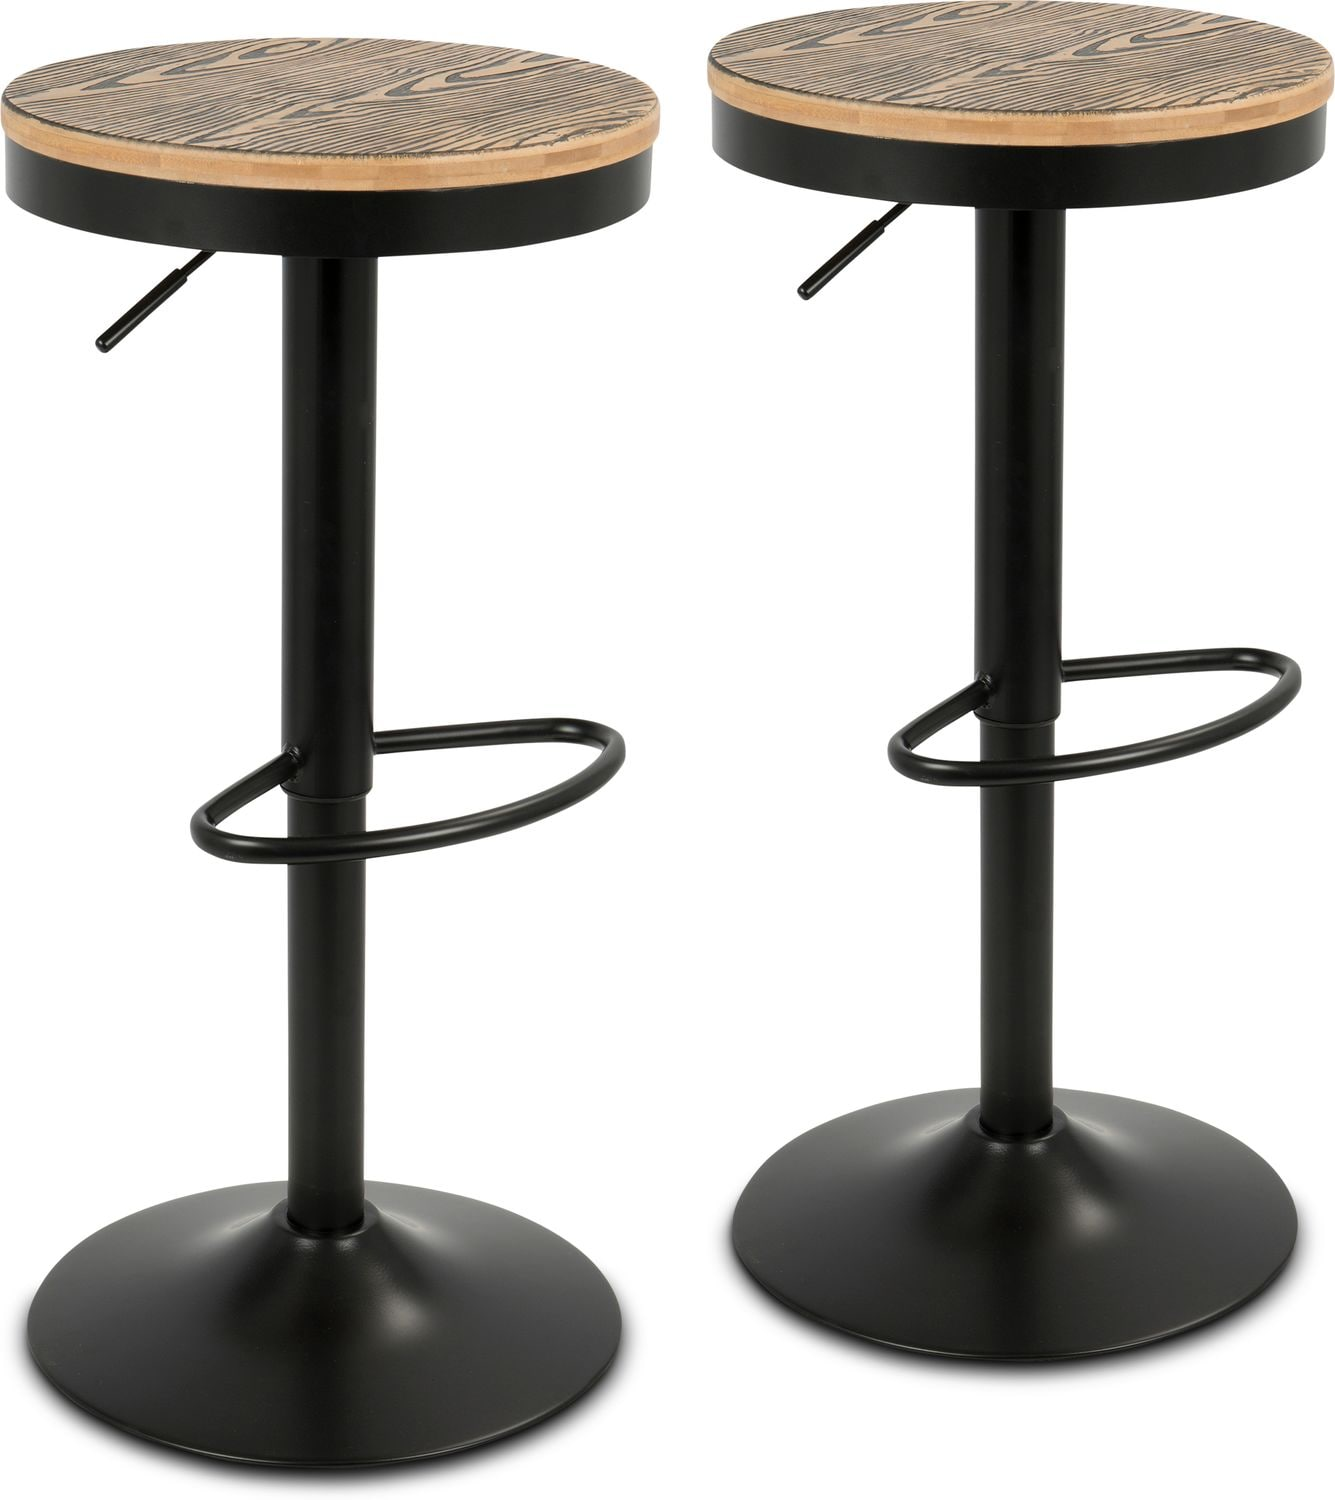 Dining Room Furniture - Noa Set of 2 Adjustable Swivel Bar Stools